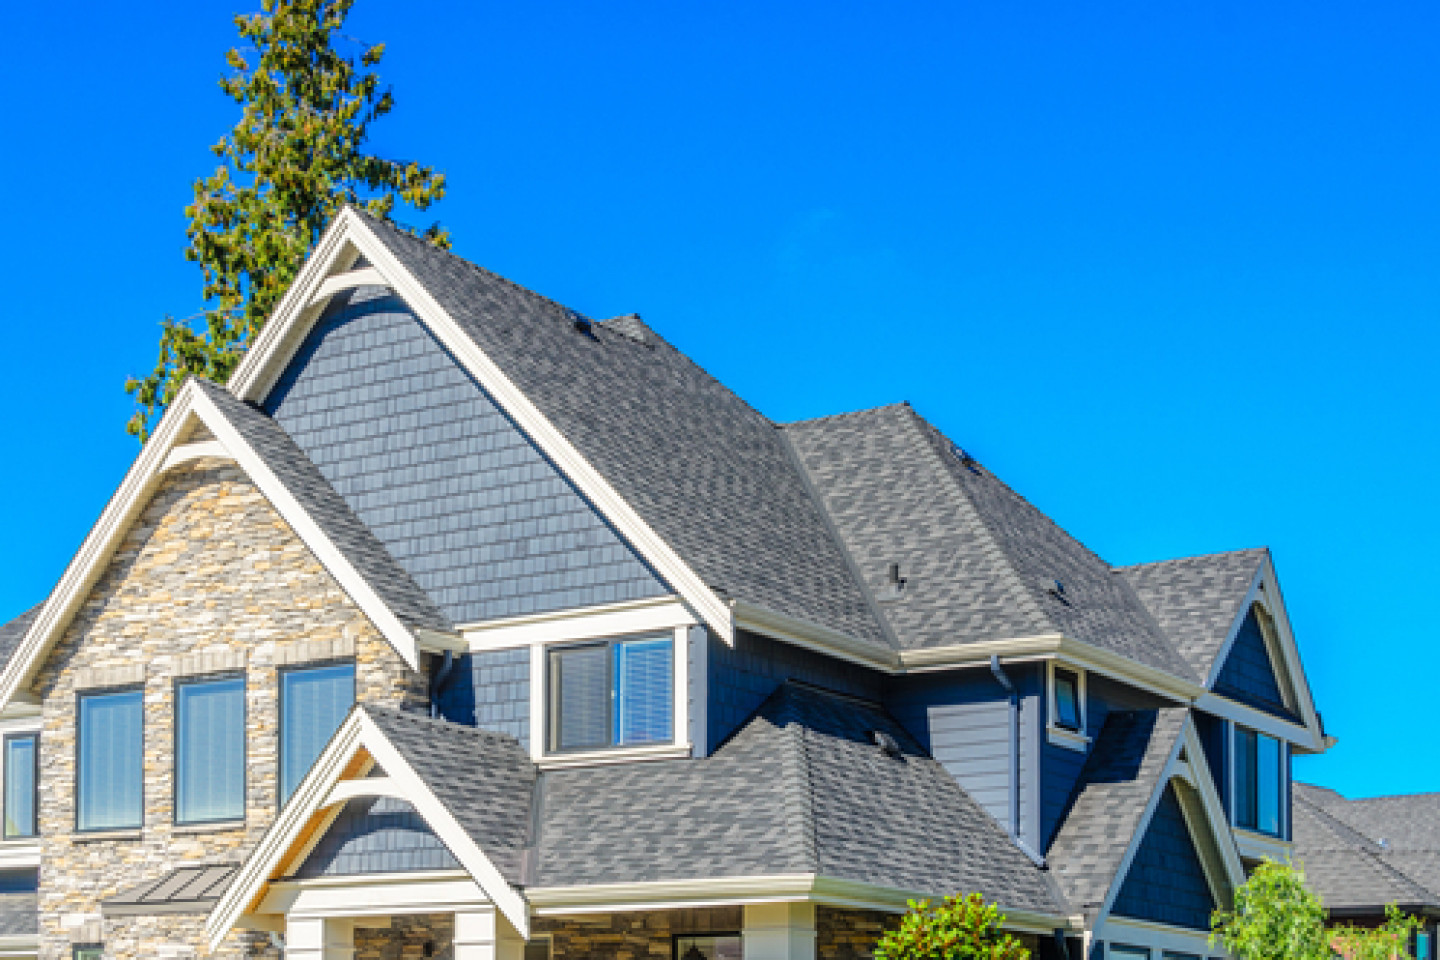 Does Your Home in Northeast Ohio Need a Roof Replacement?